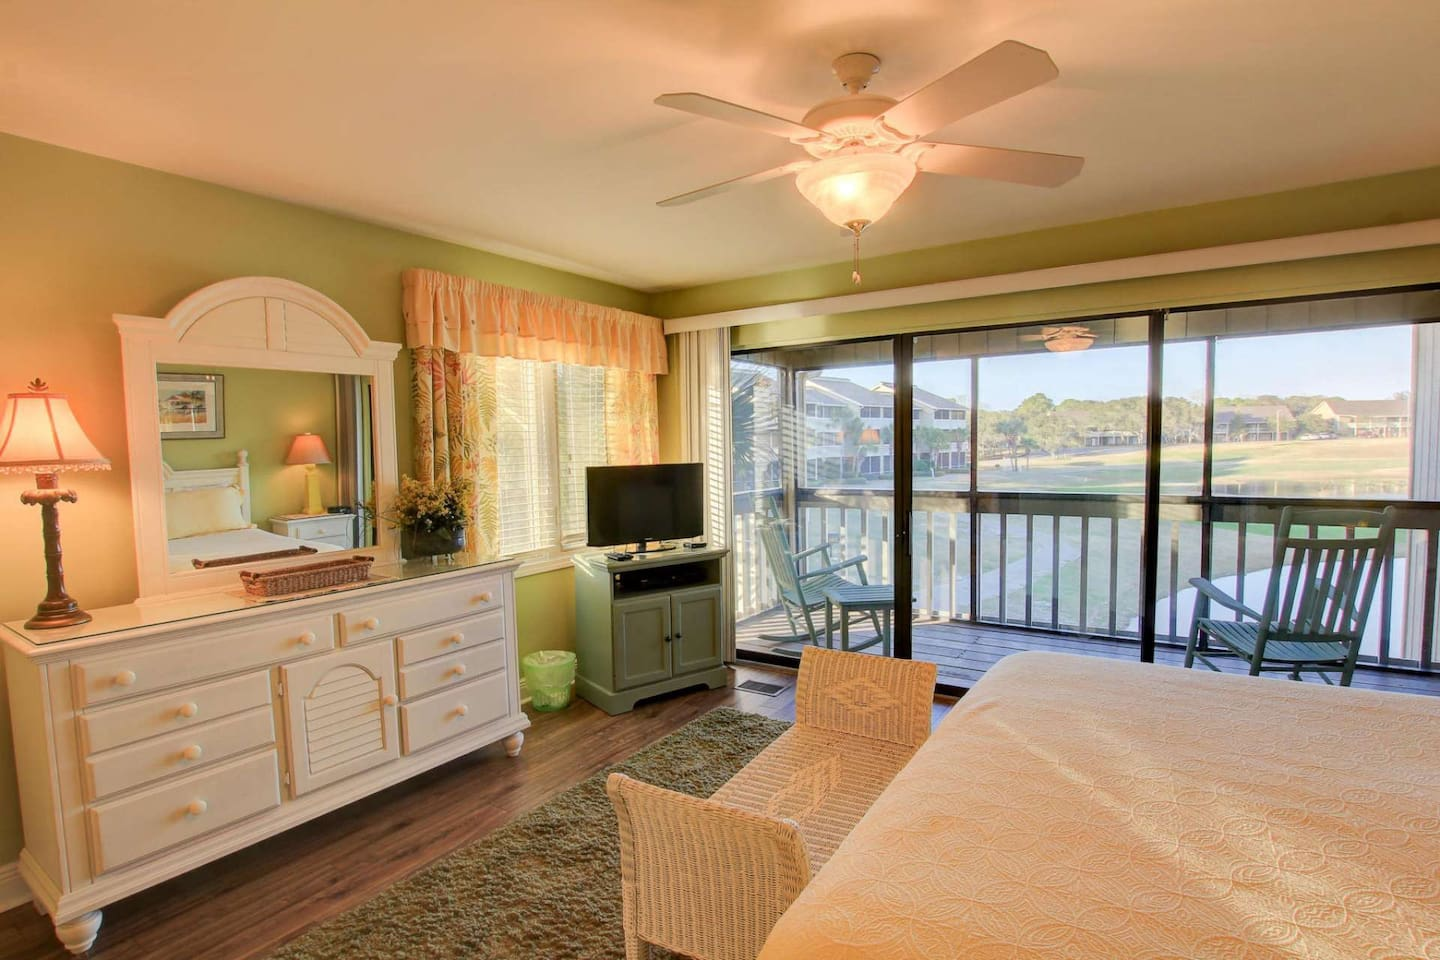 Master bedroom with king size bed, private access to waterfront patio, flat screen TV, ceiling fan, triple dresser